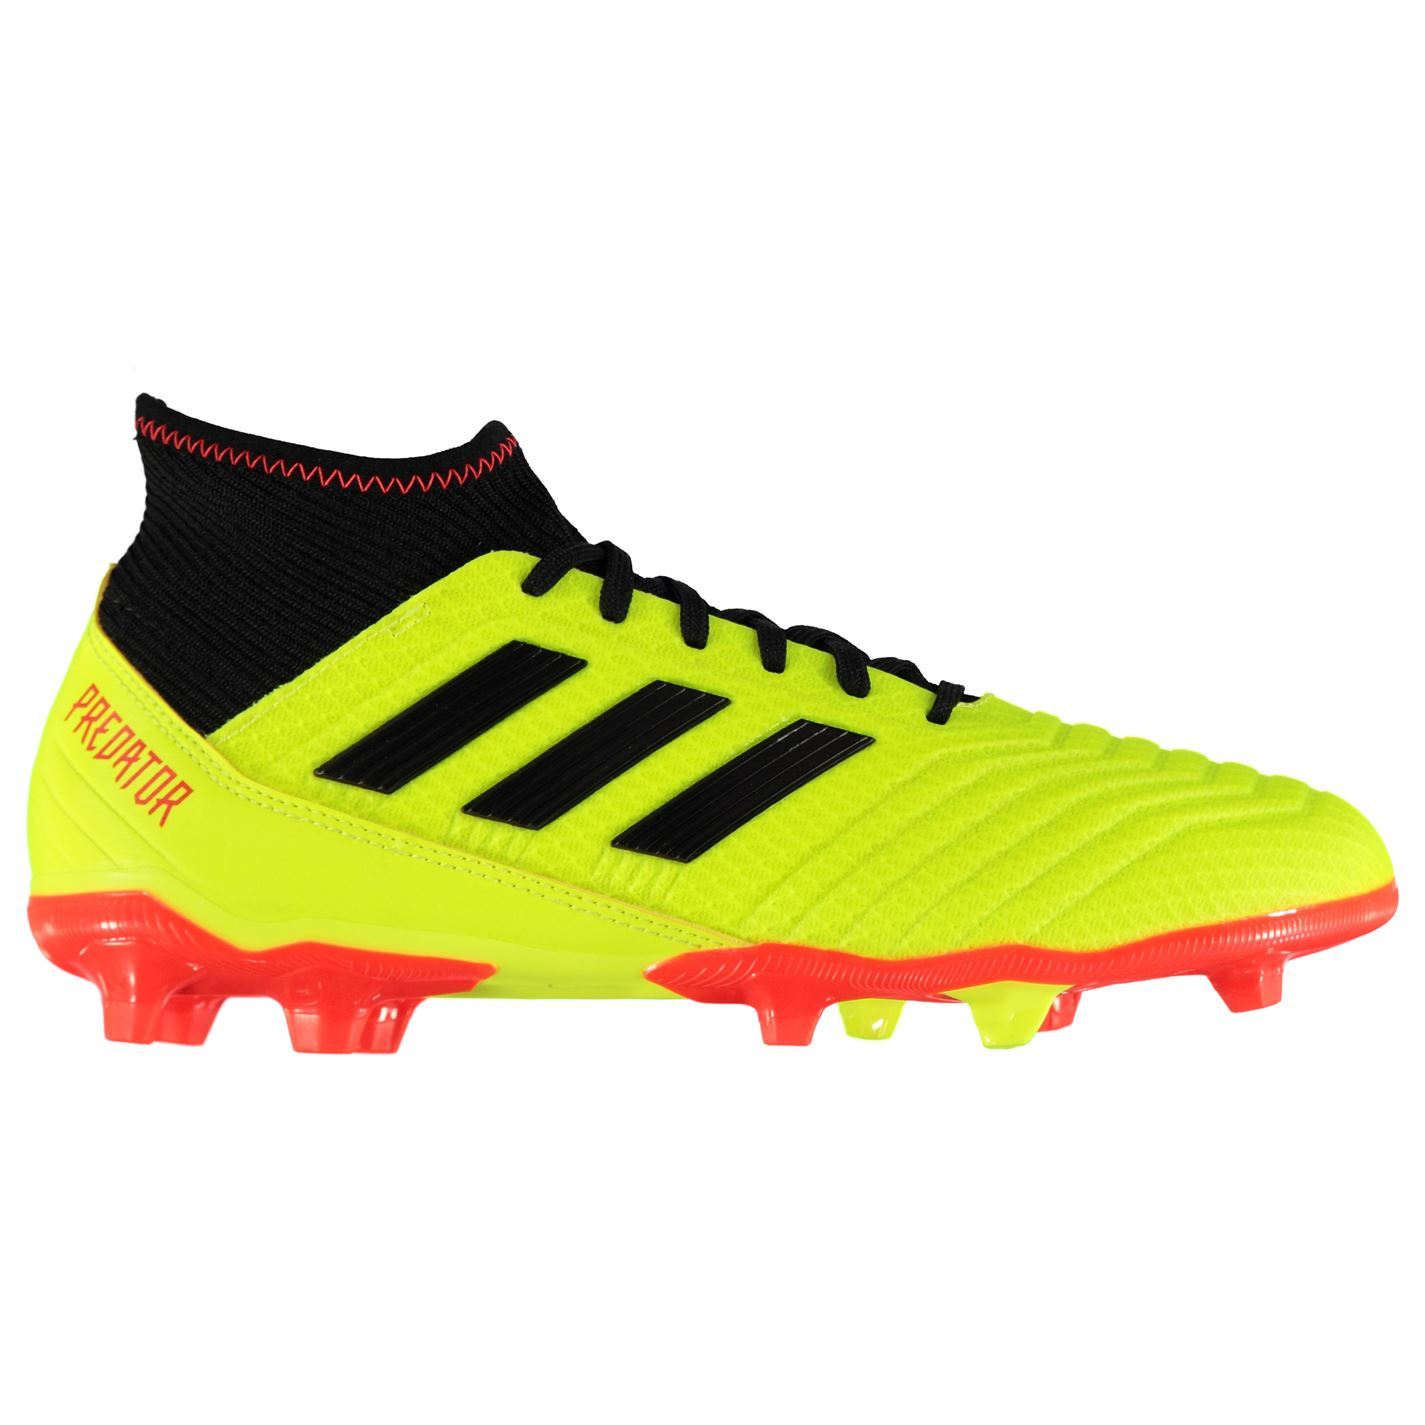 e2ea612cb56f8a ... adidas Predator 18.3 Firm Ground Football Boots Mens Yellow Black  Soccer Cleats ...